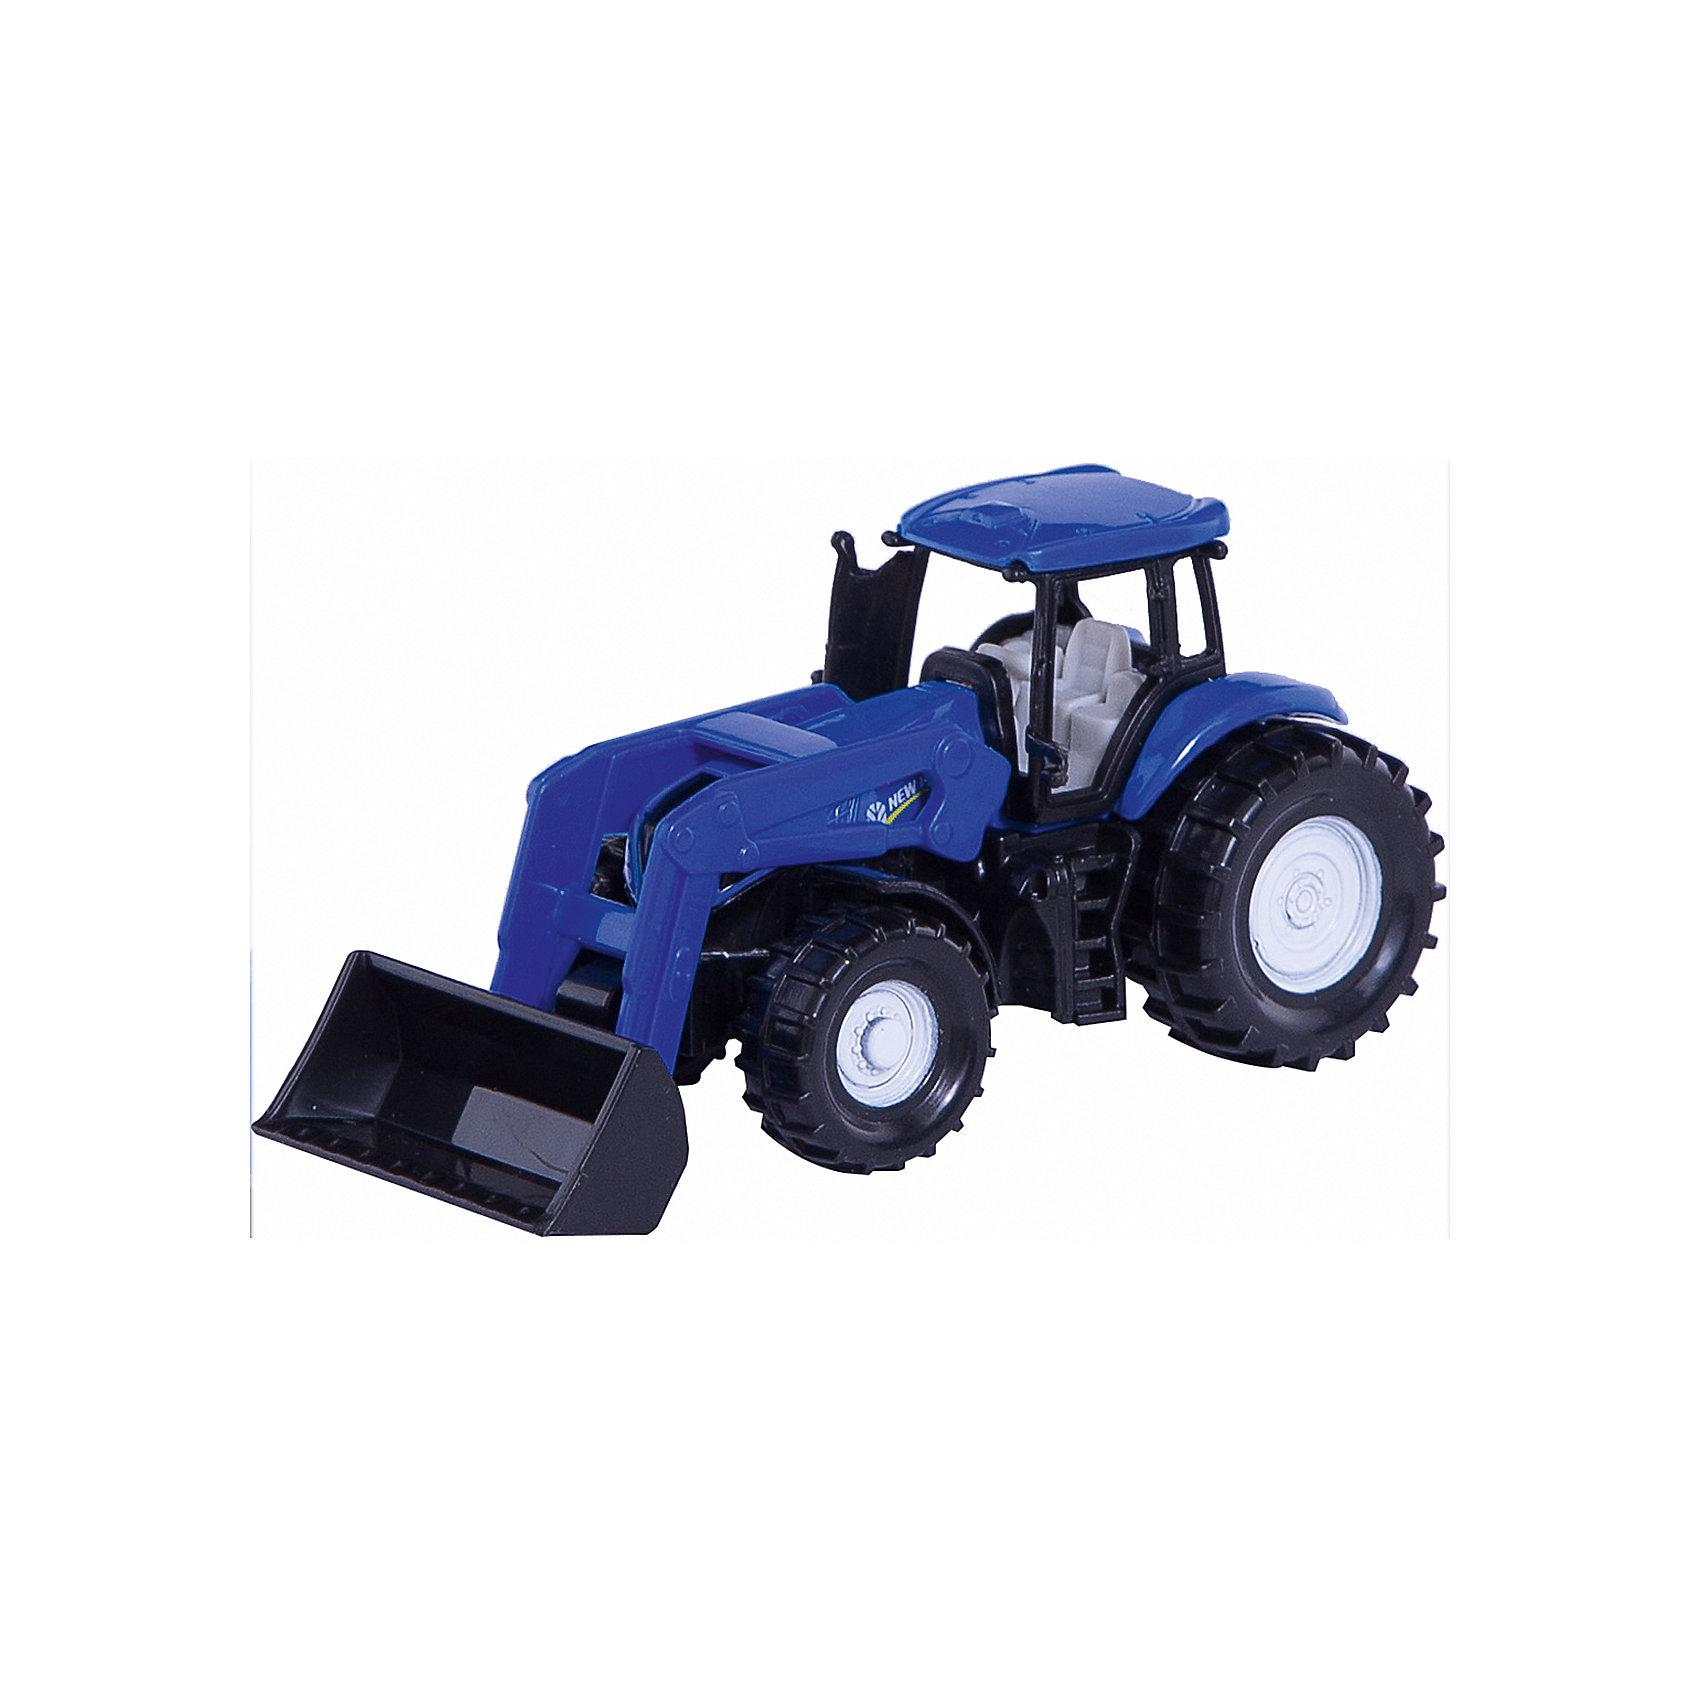 SIKU Трактор New Holland, синий (1:72), SIKU tomy трактор new holland t7 270 с 3 лет